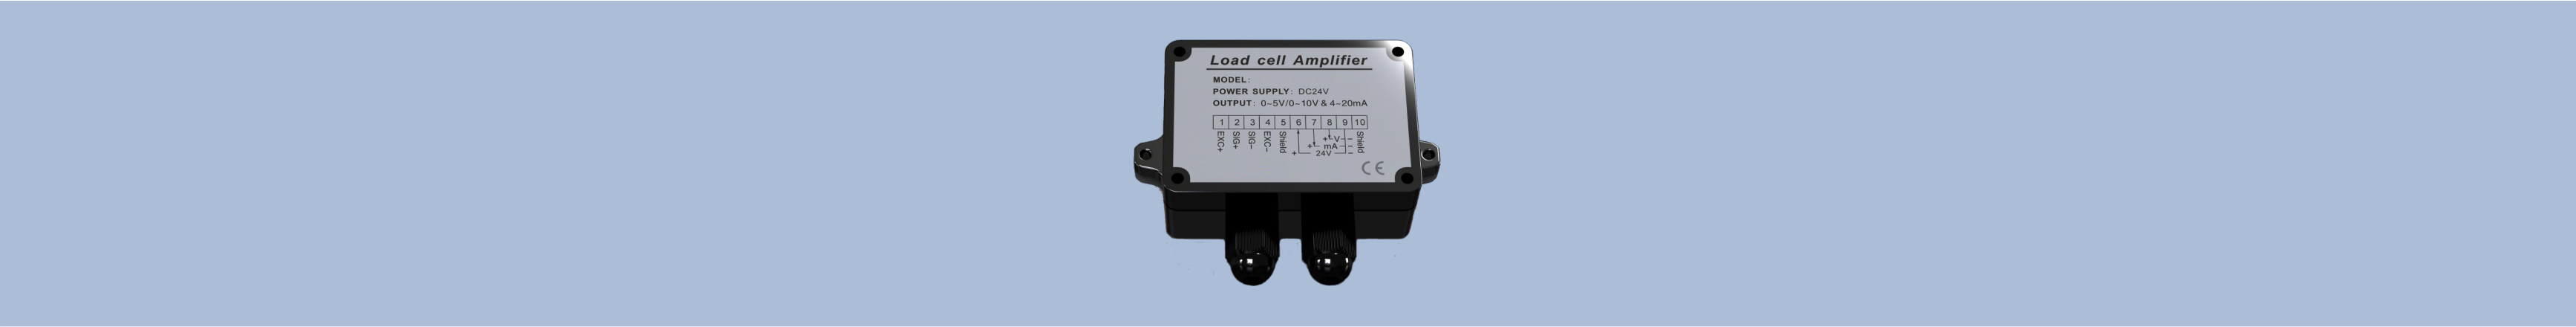 SGALC Analogue Strain Gauge Load Cell Amplifier